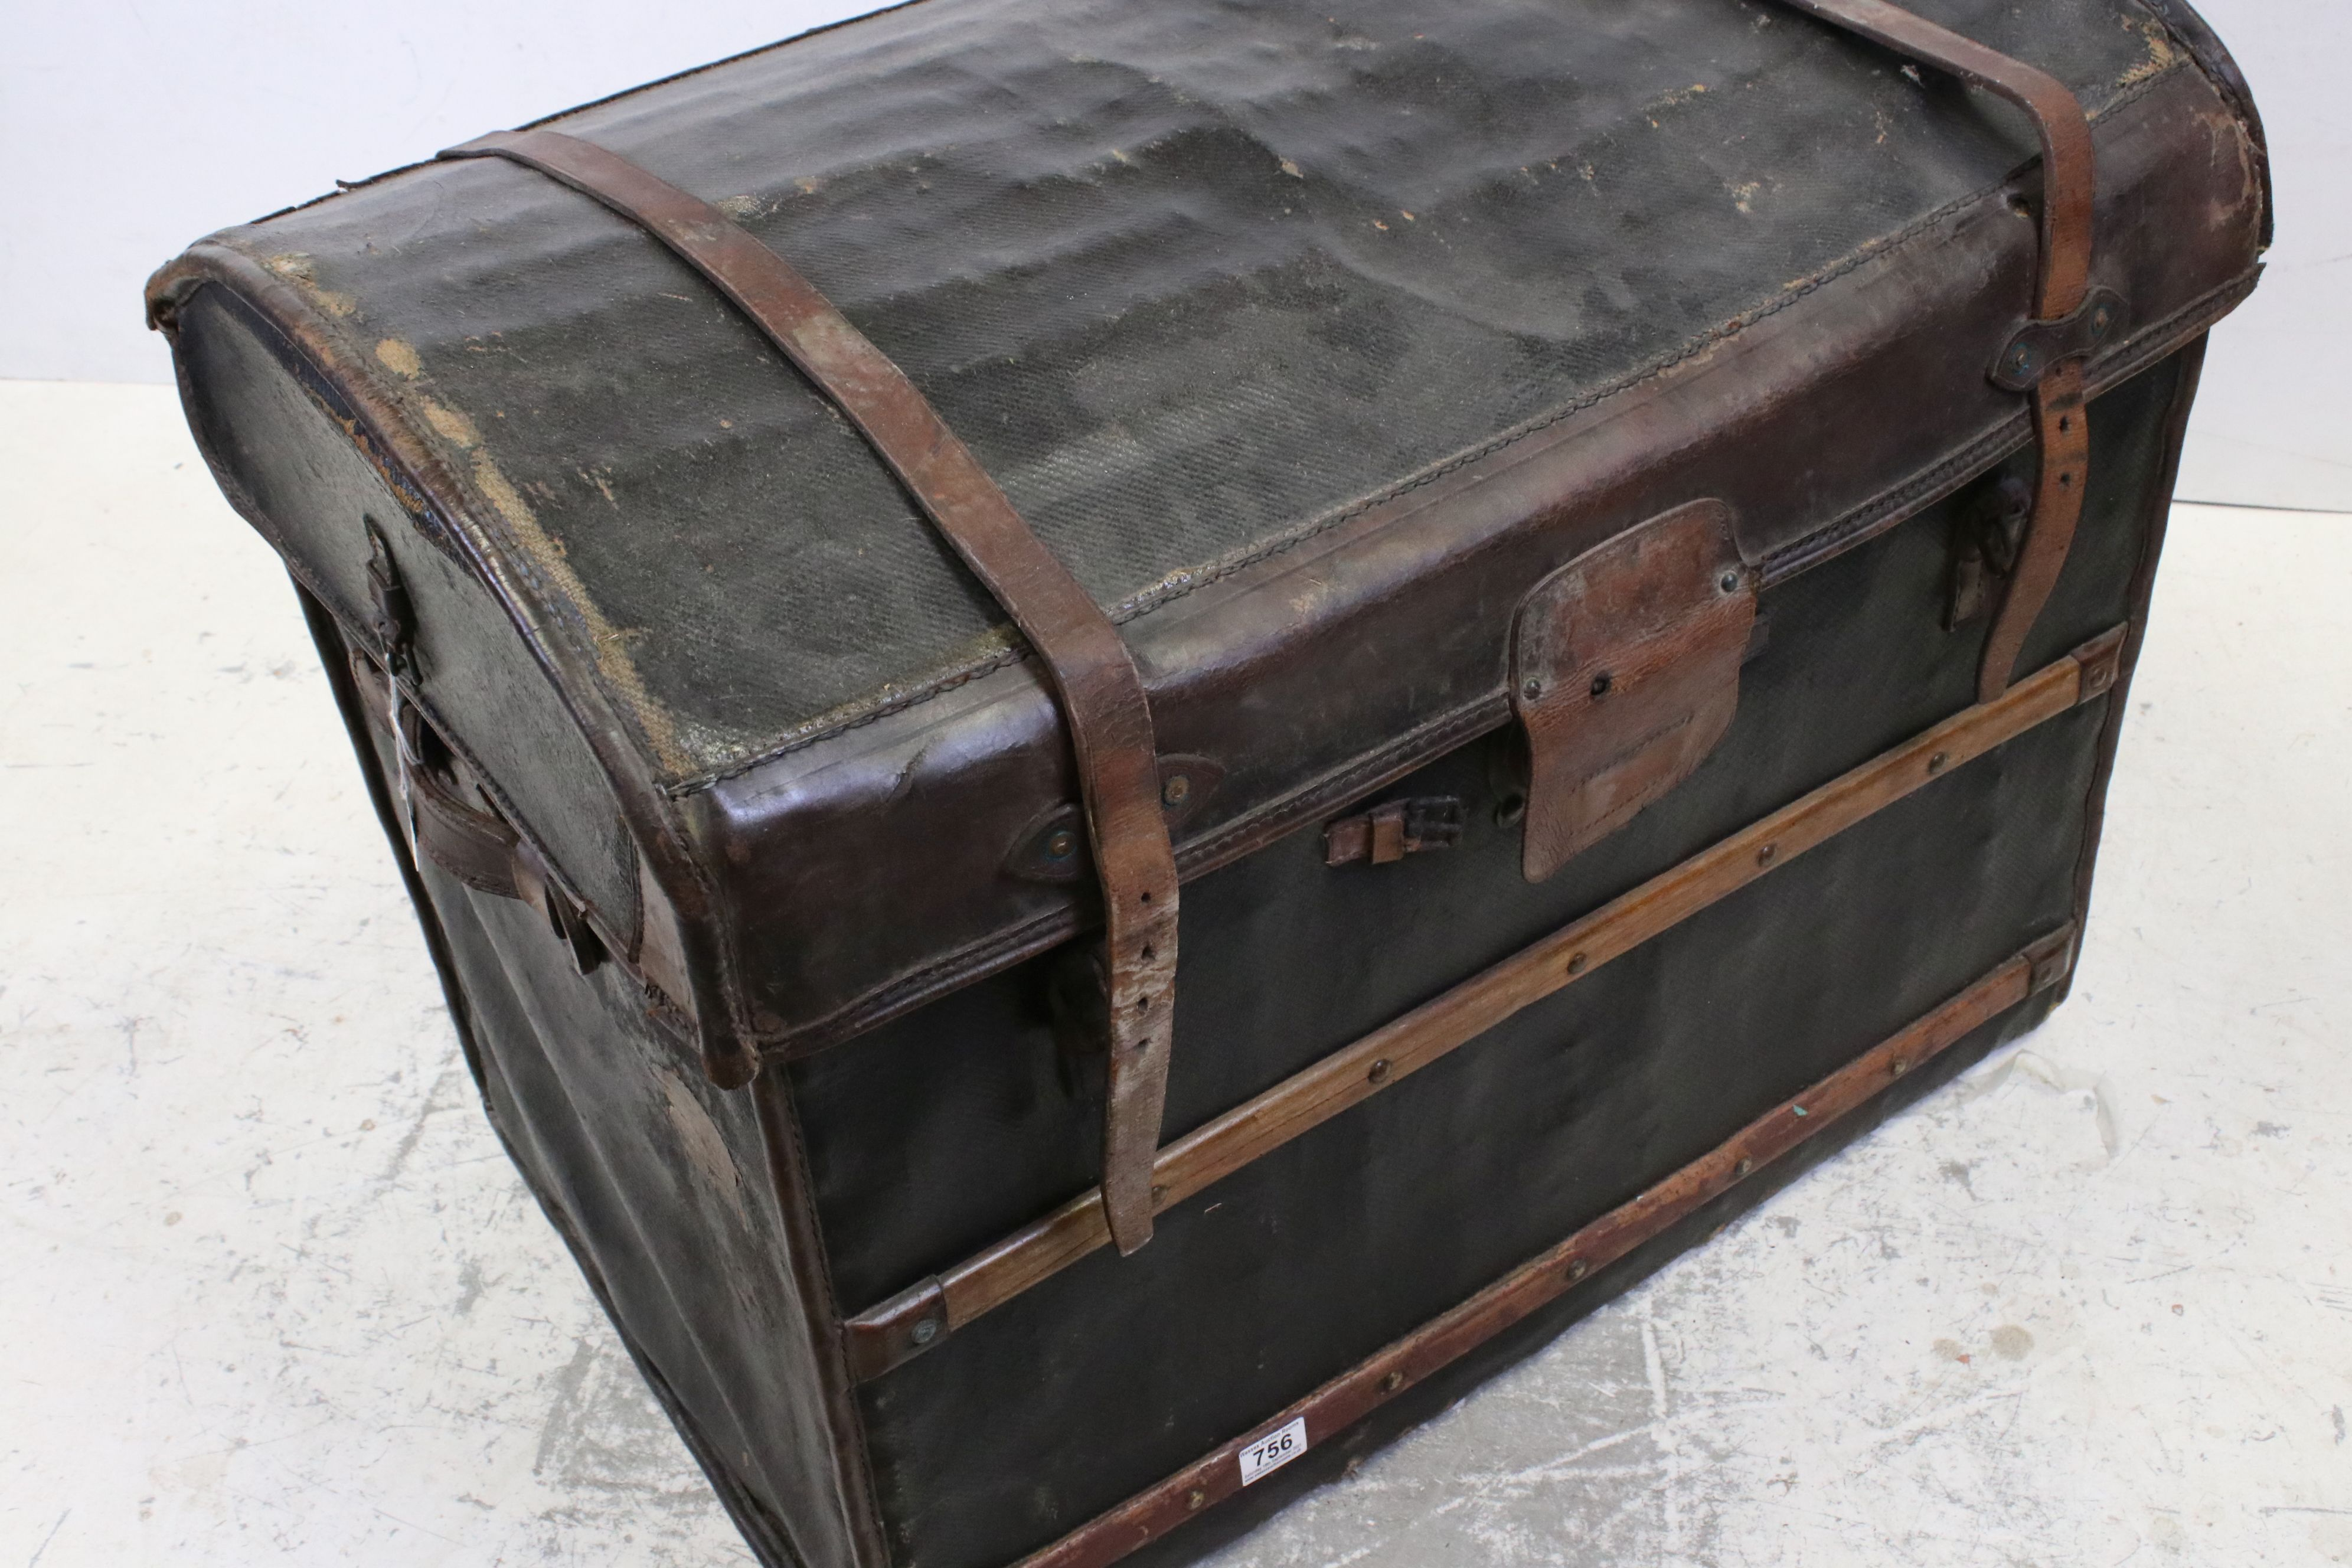 19th century Domed Top Wicker Leather Bound Travelling Trunk with Drop-in Tray, 82cms long x 66cms - Image 7 of 7